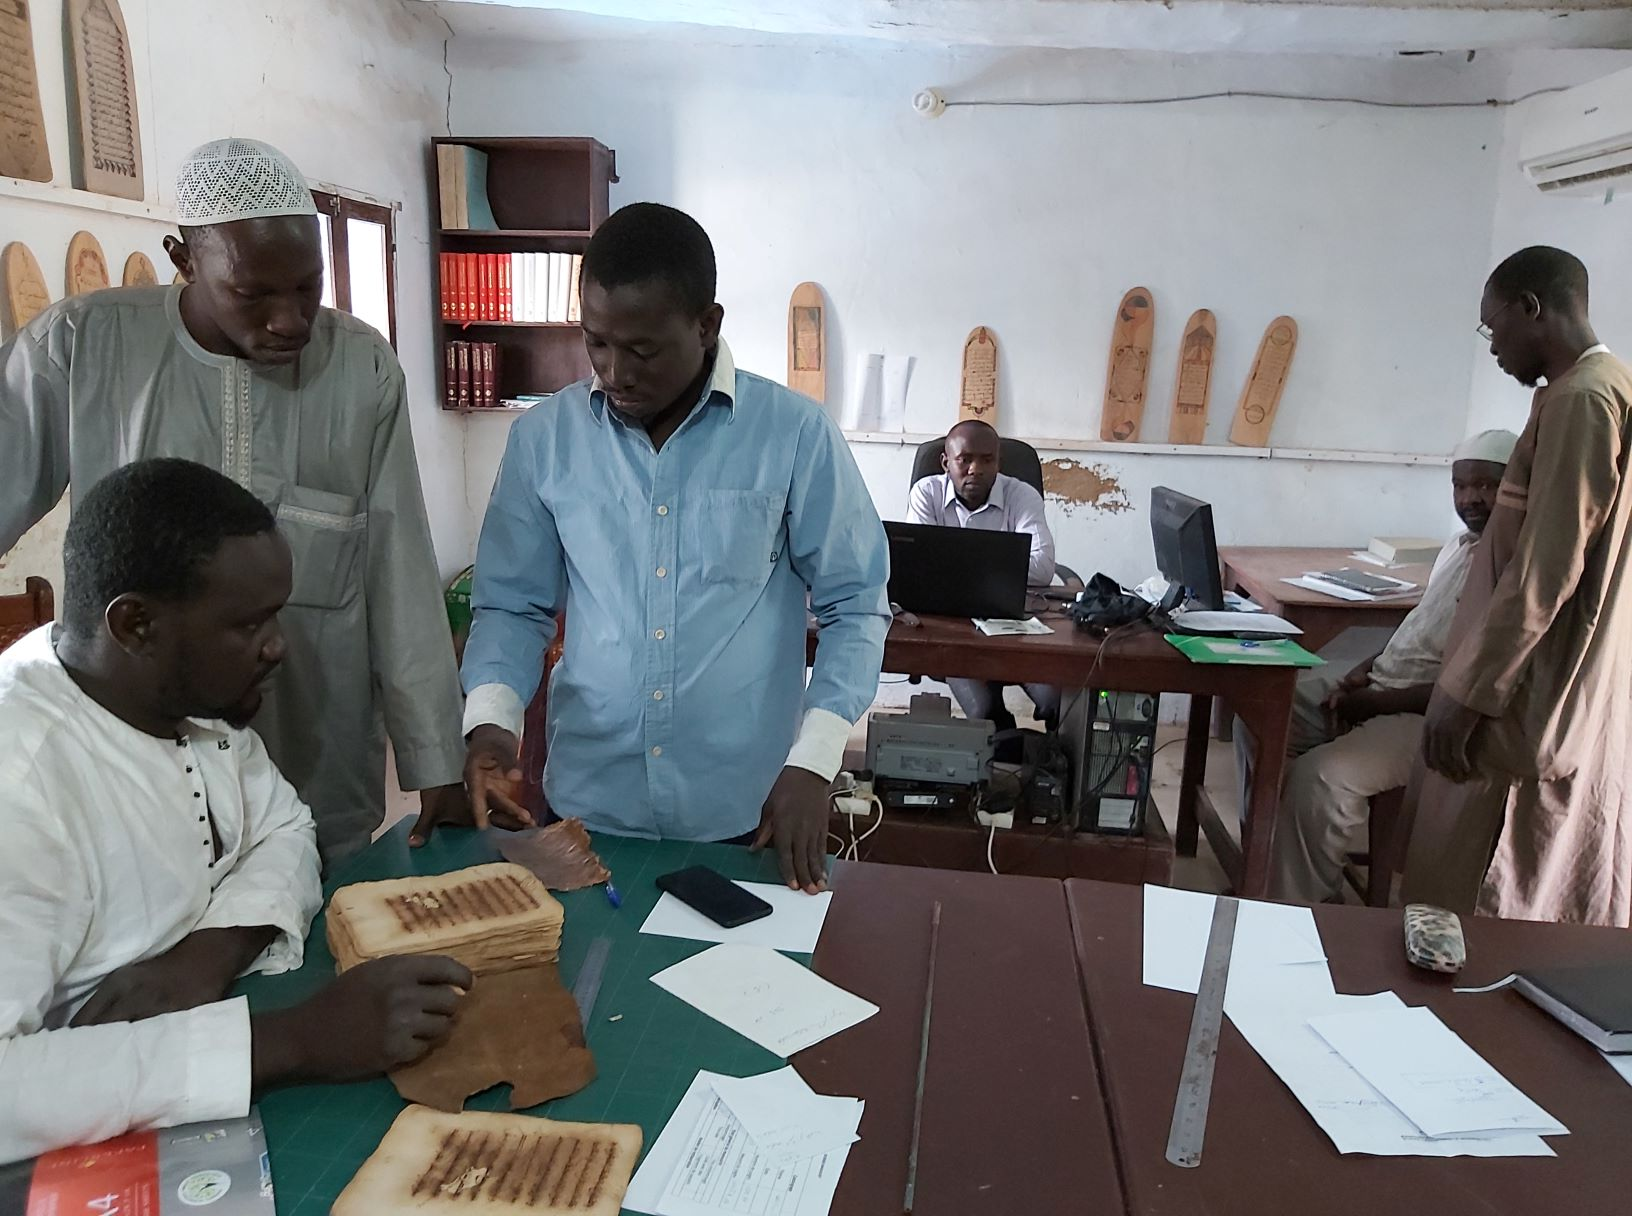 Technicians and archivists at the Djenné Manuscript Library